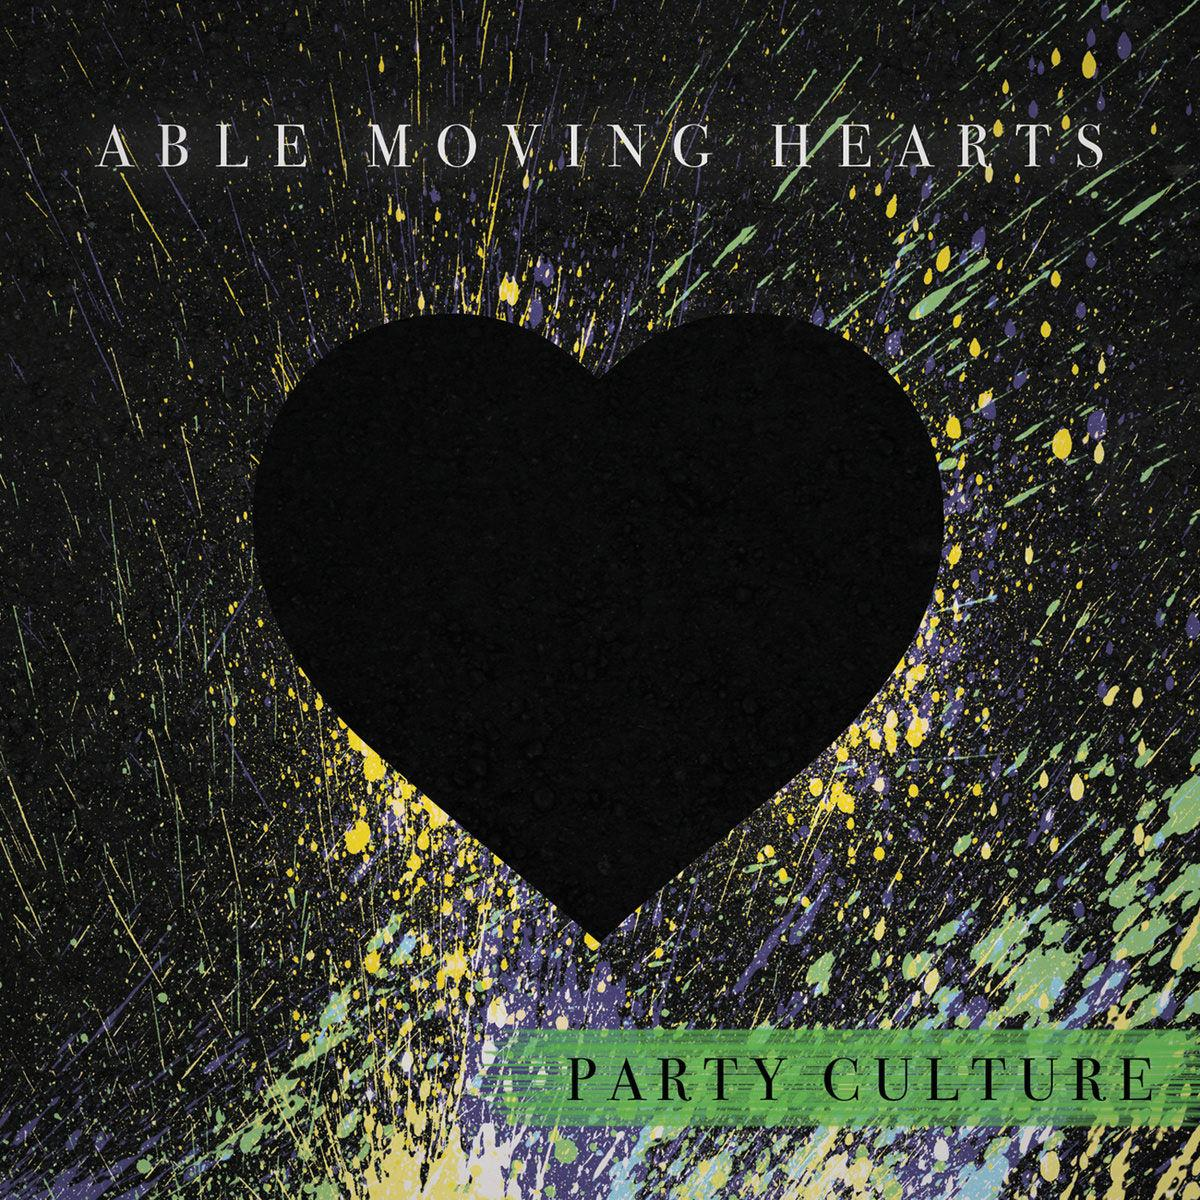 Able Moving Hearts